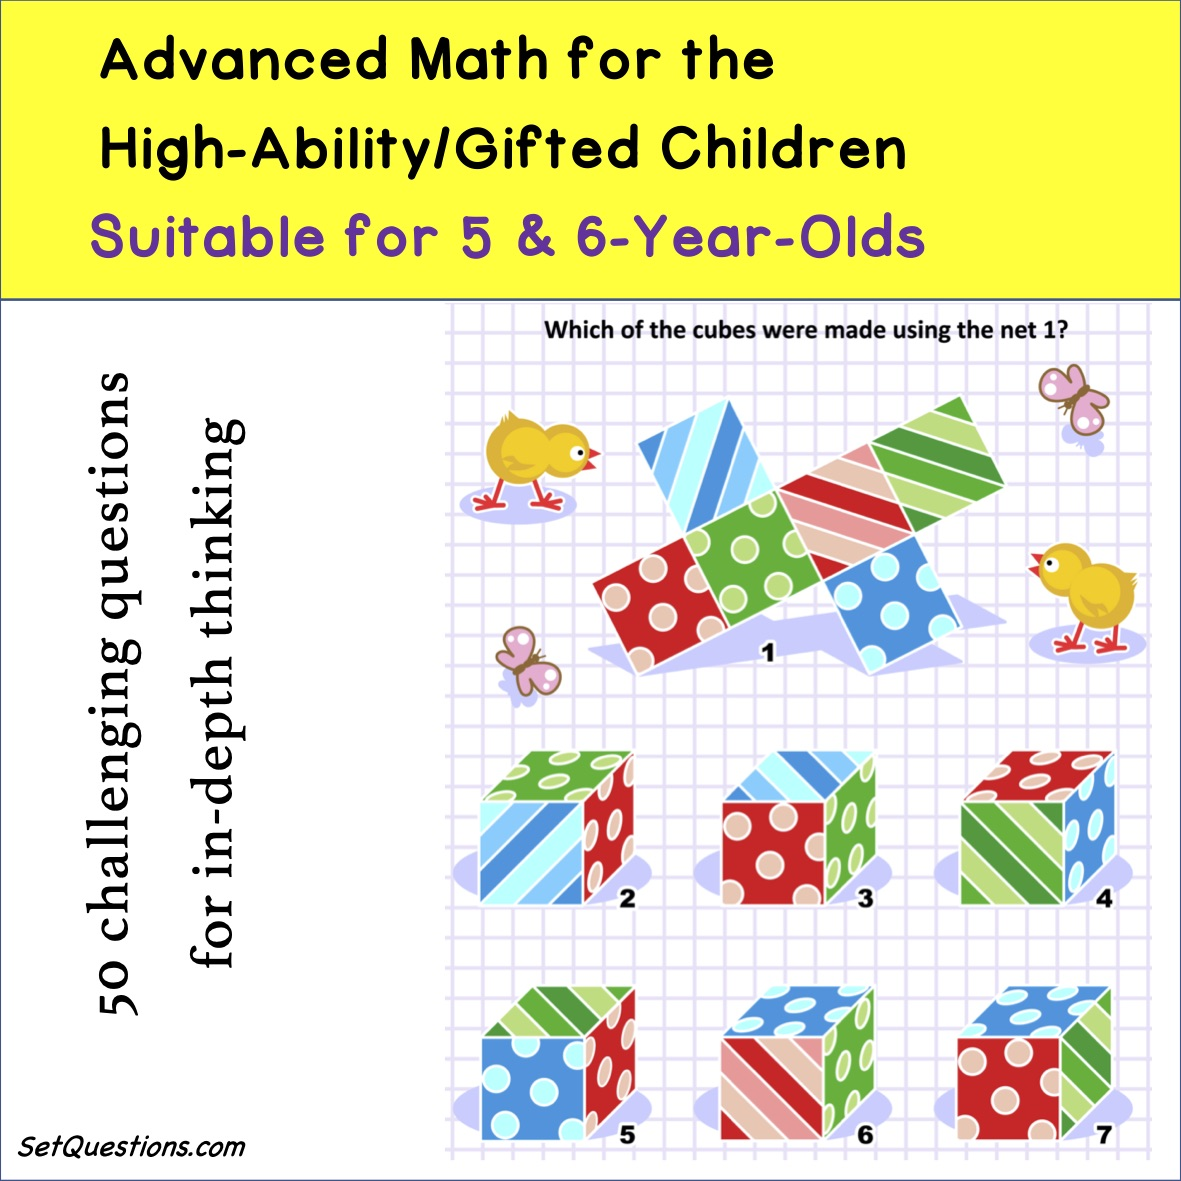 Advanced Math for Gifted 5-6-Year-Olds | SetQuestions.com